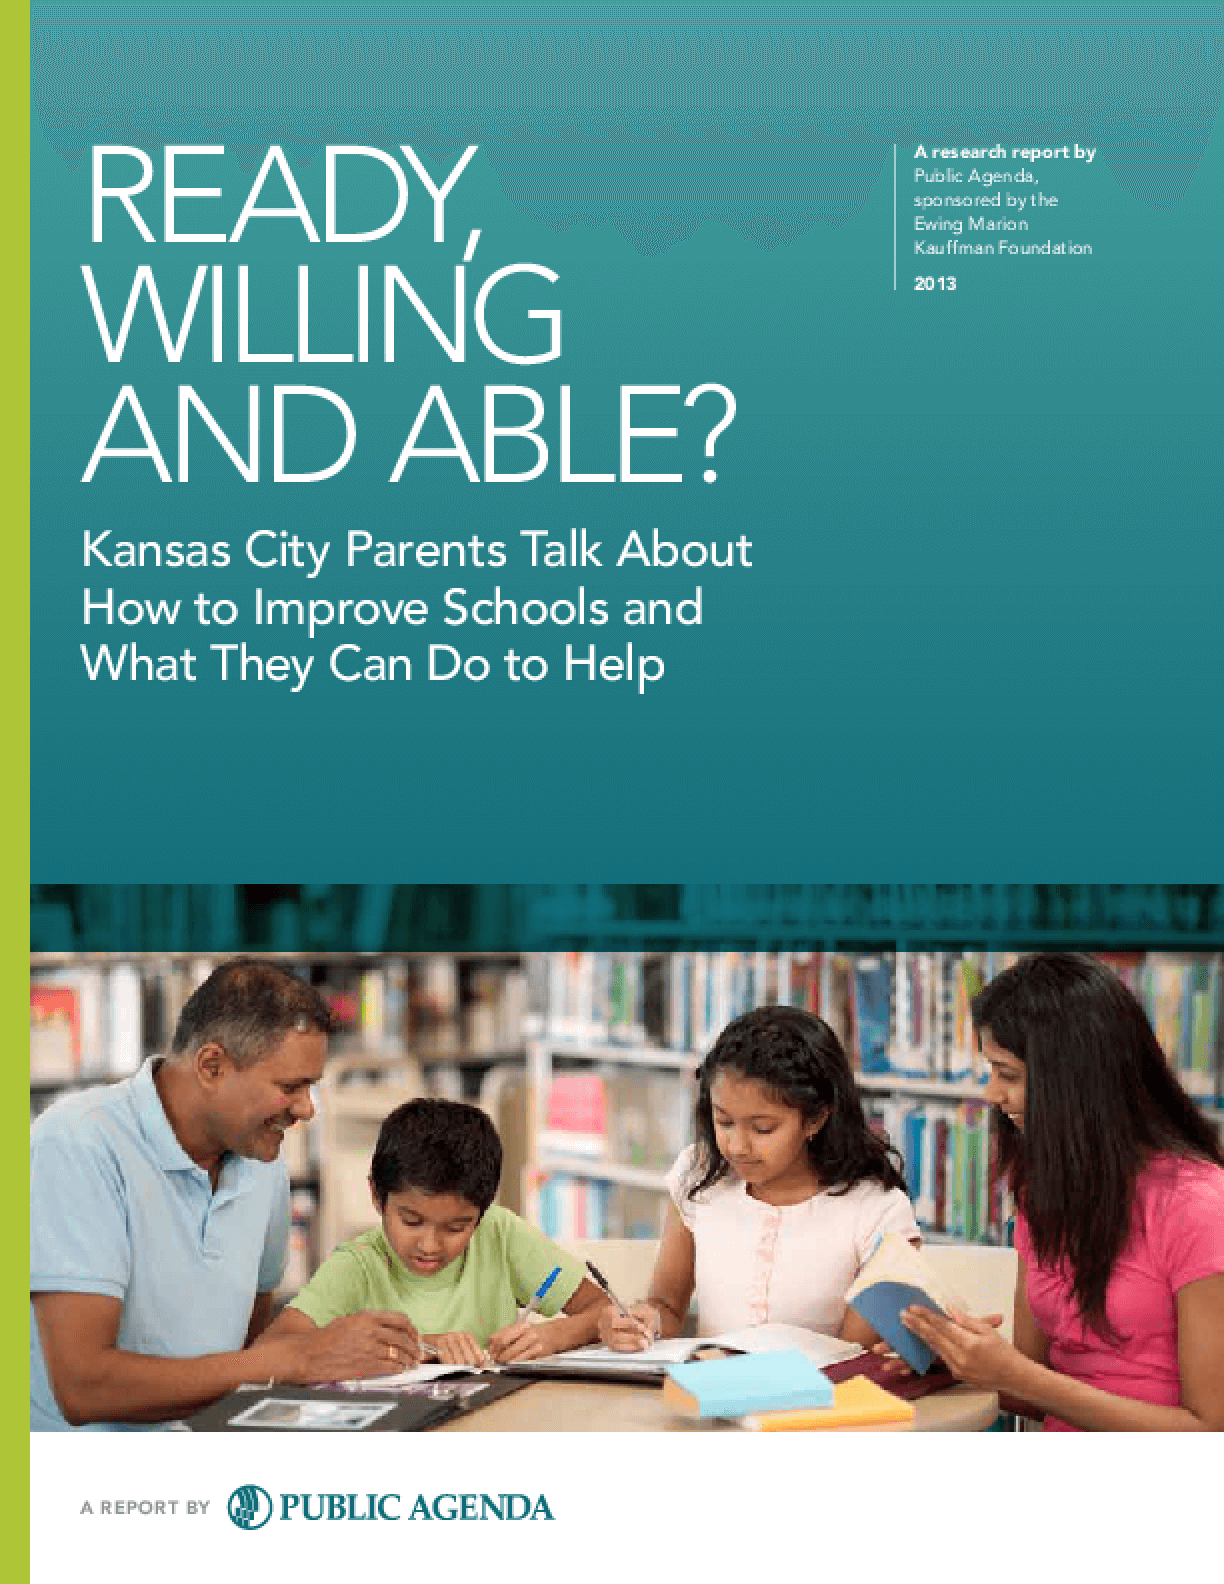 Ready, Willing and Able: Kansas City Parents Talk About How to Improve Schools and What They Can Do to Help